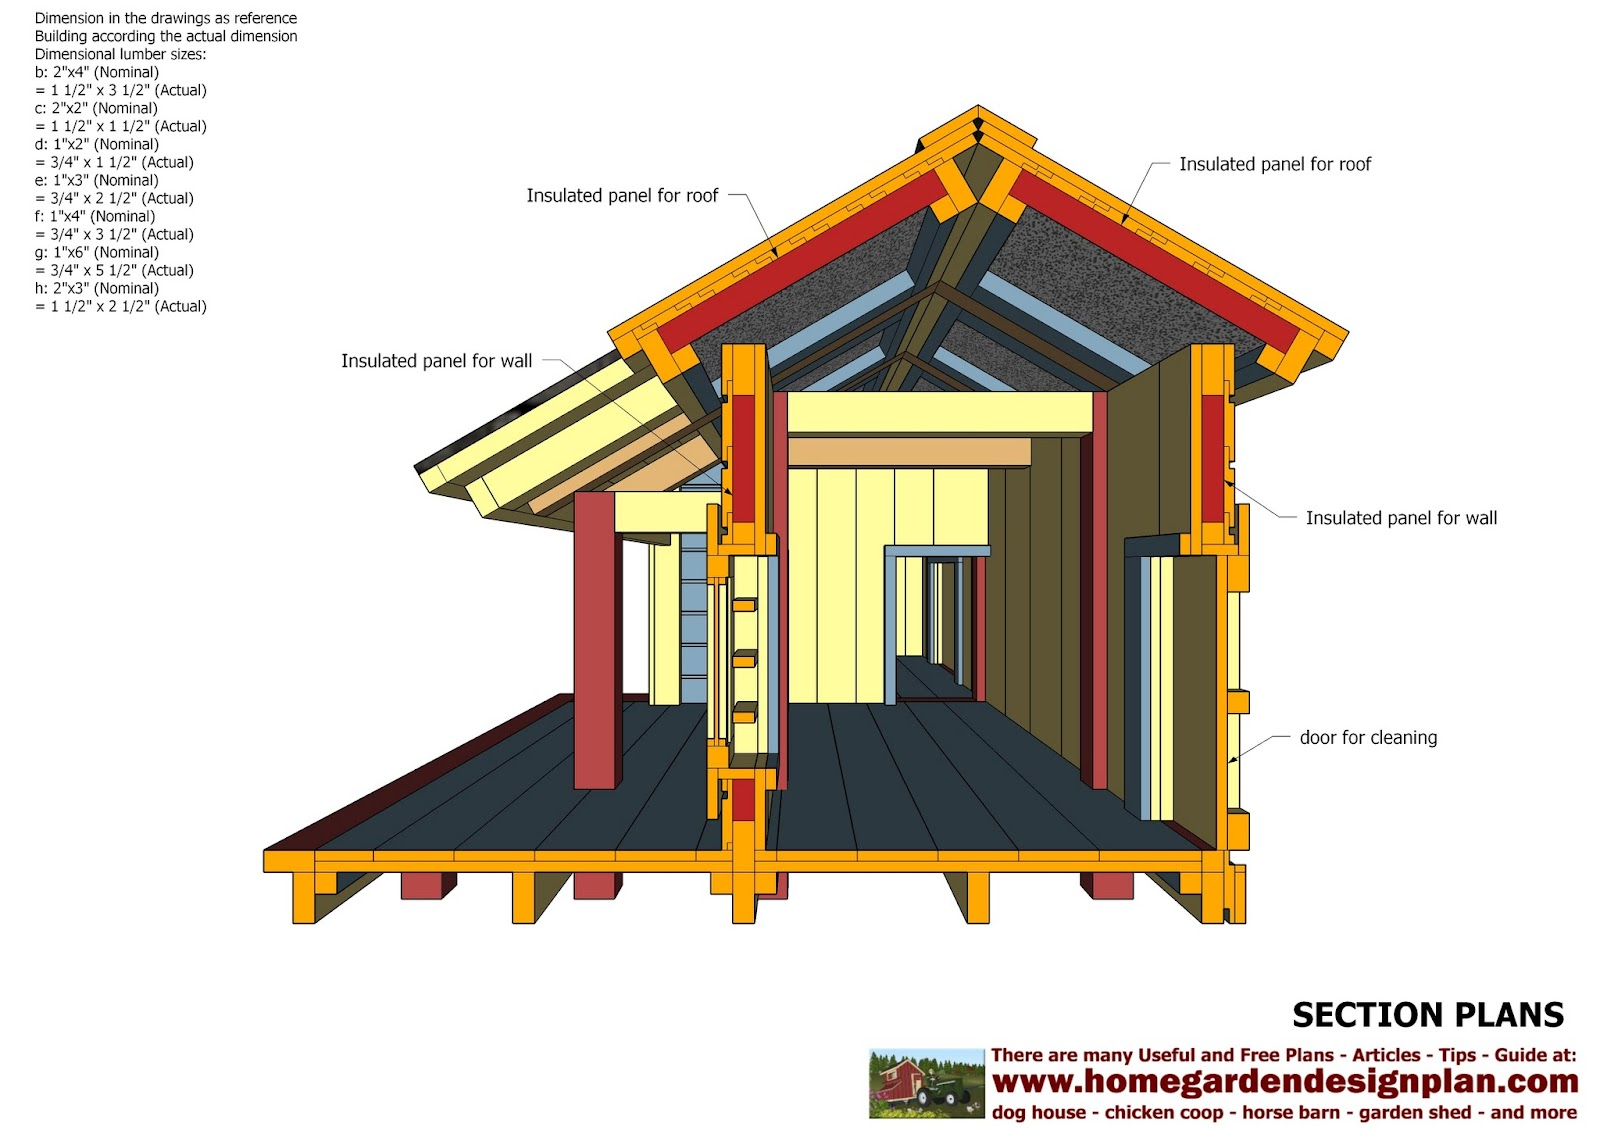 Wood working idea ranch dog house plans for Insulated dog house plans pdf